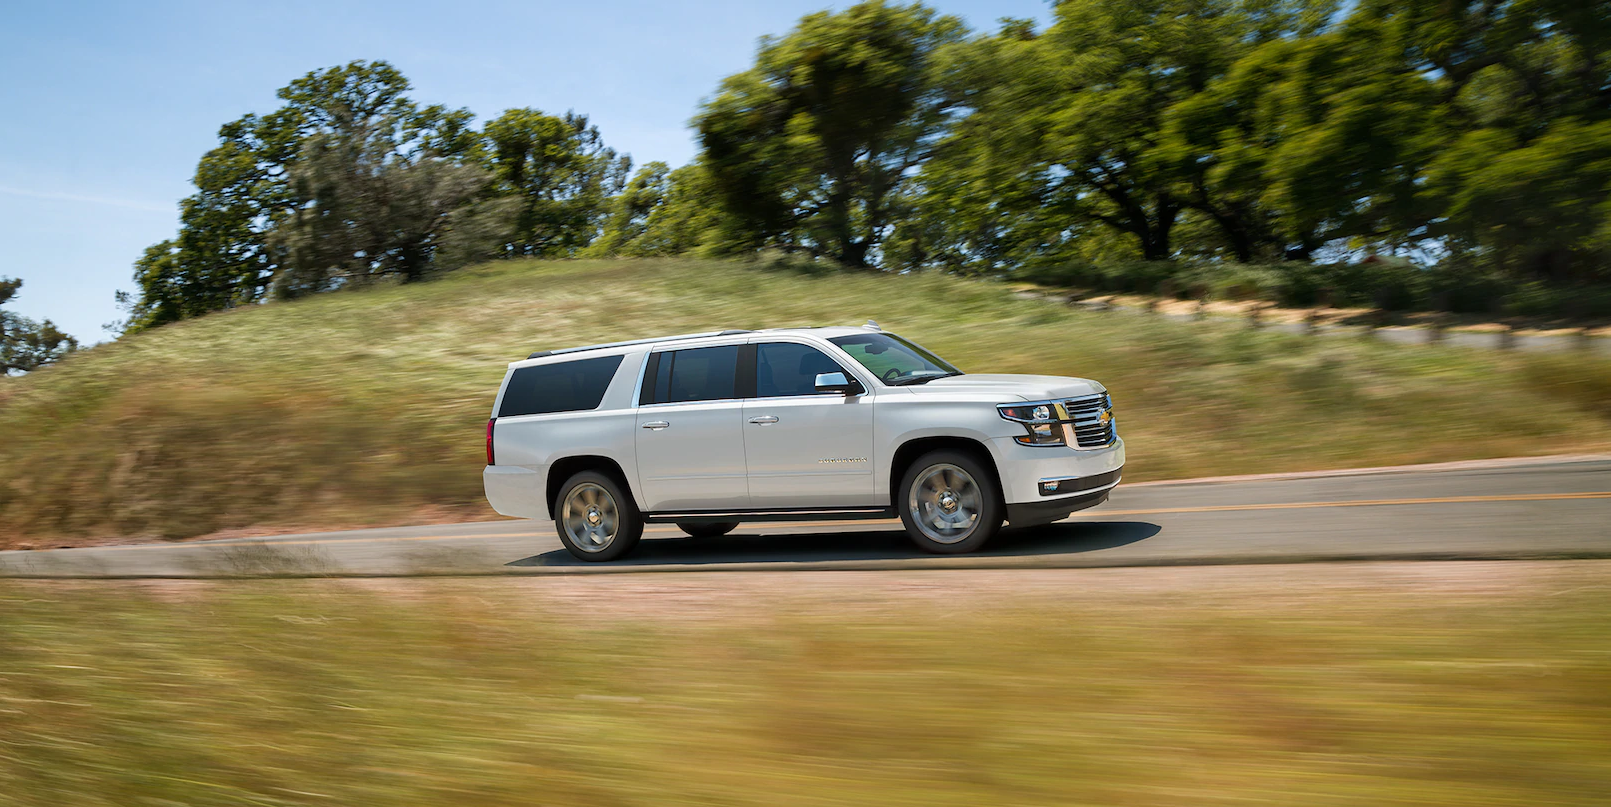 Chevy Suburban Vs  Cadillac Escalade: Full-Size SUV Comparison